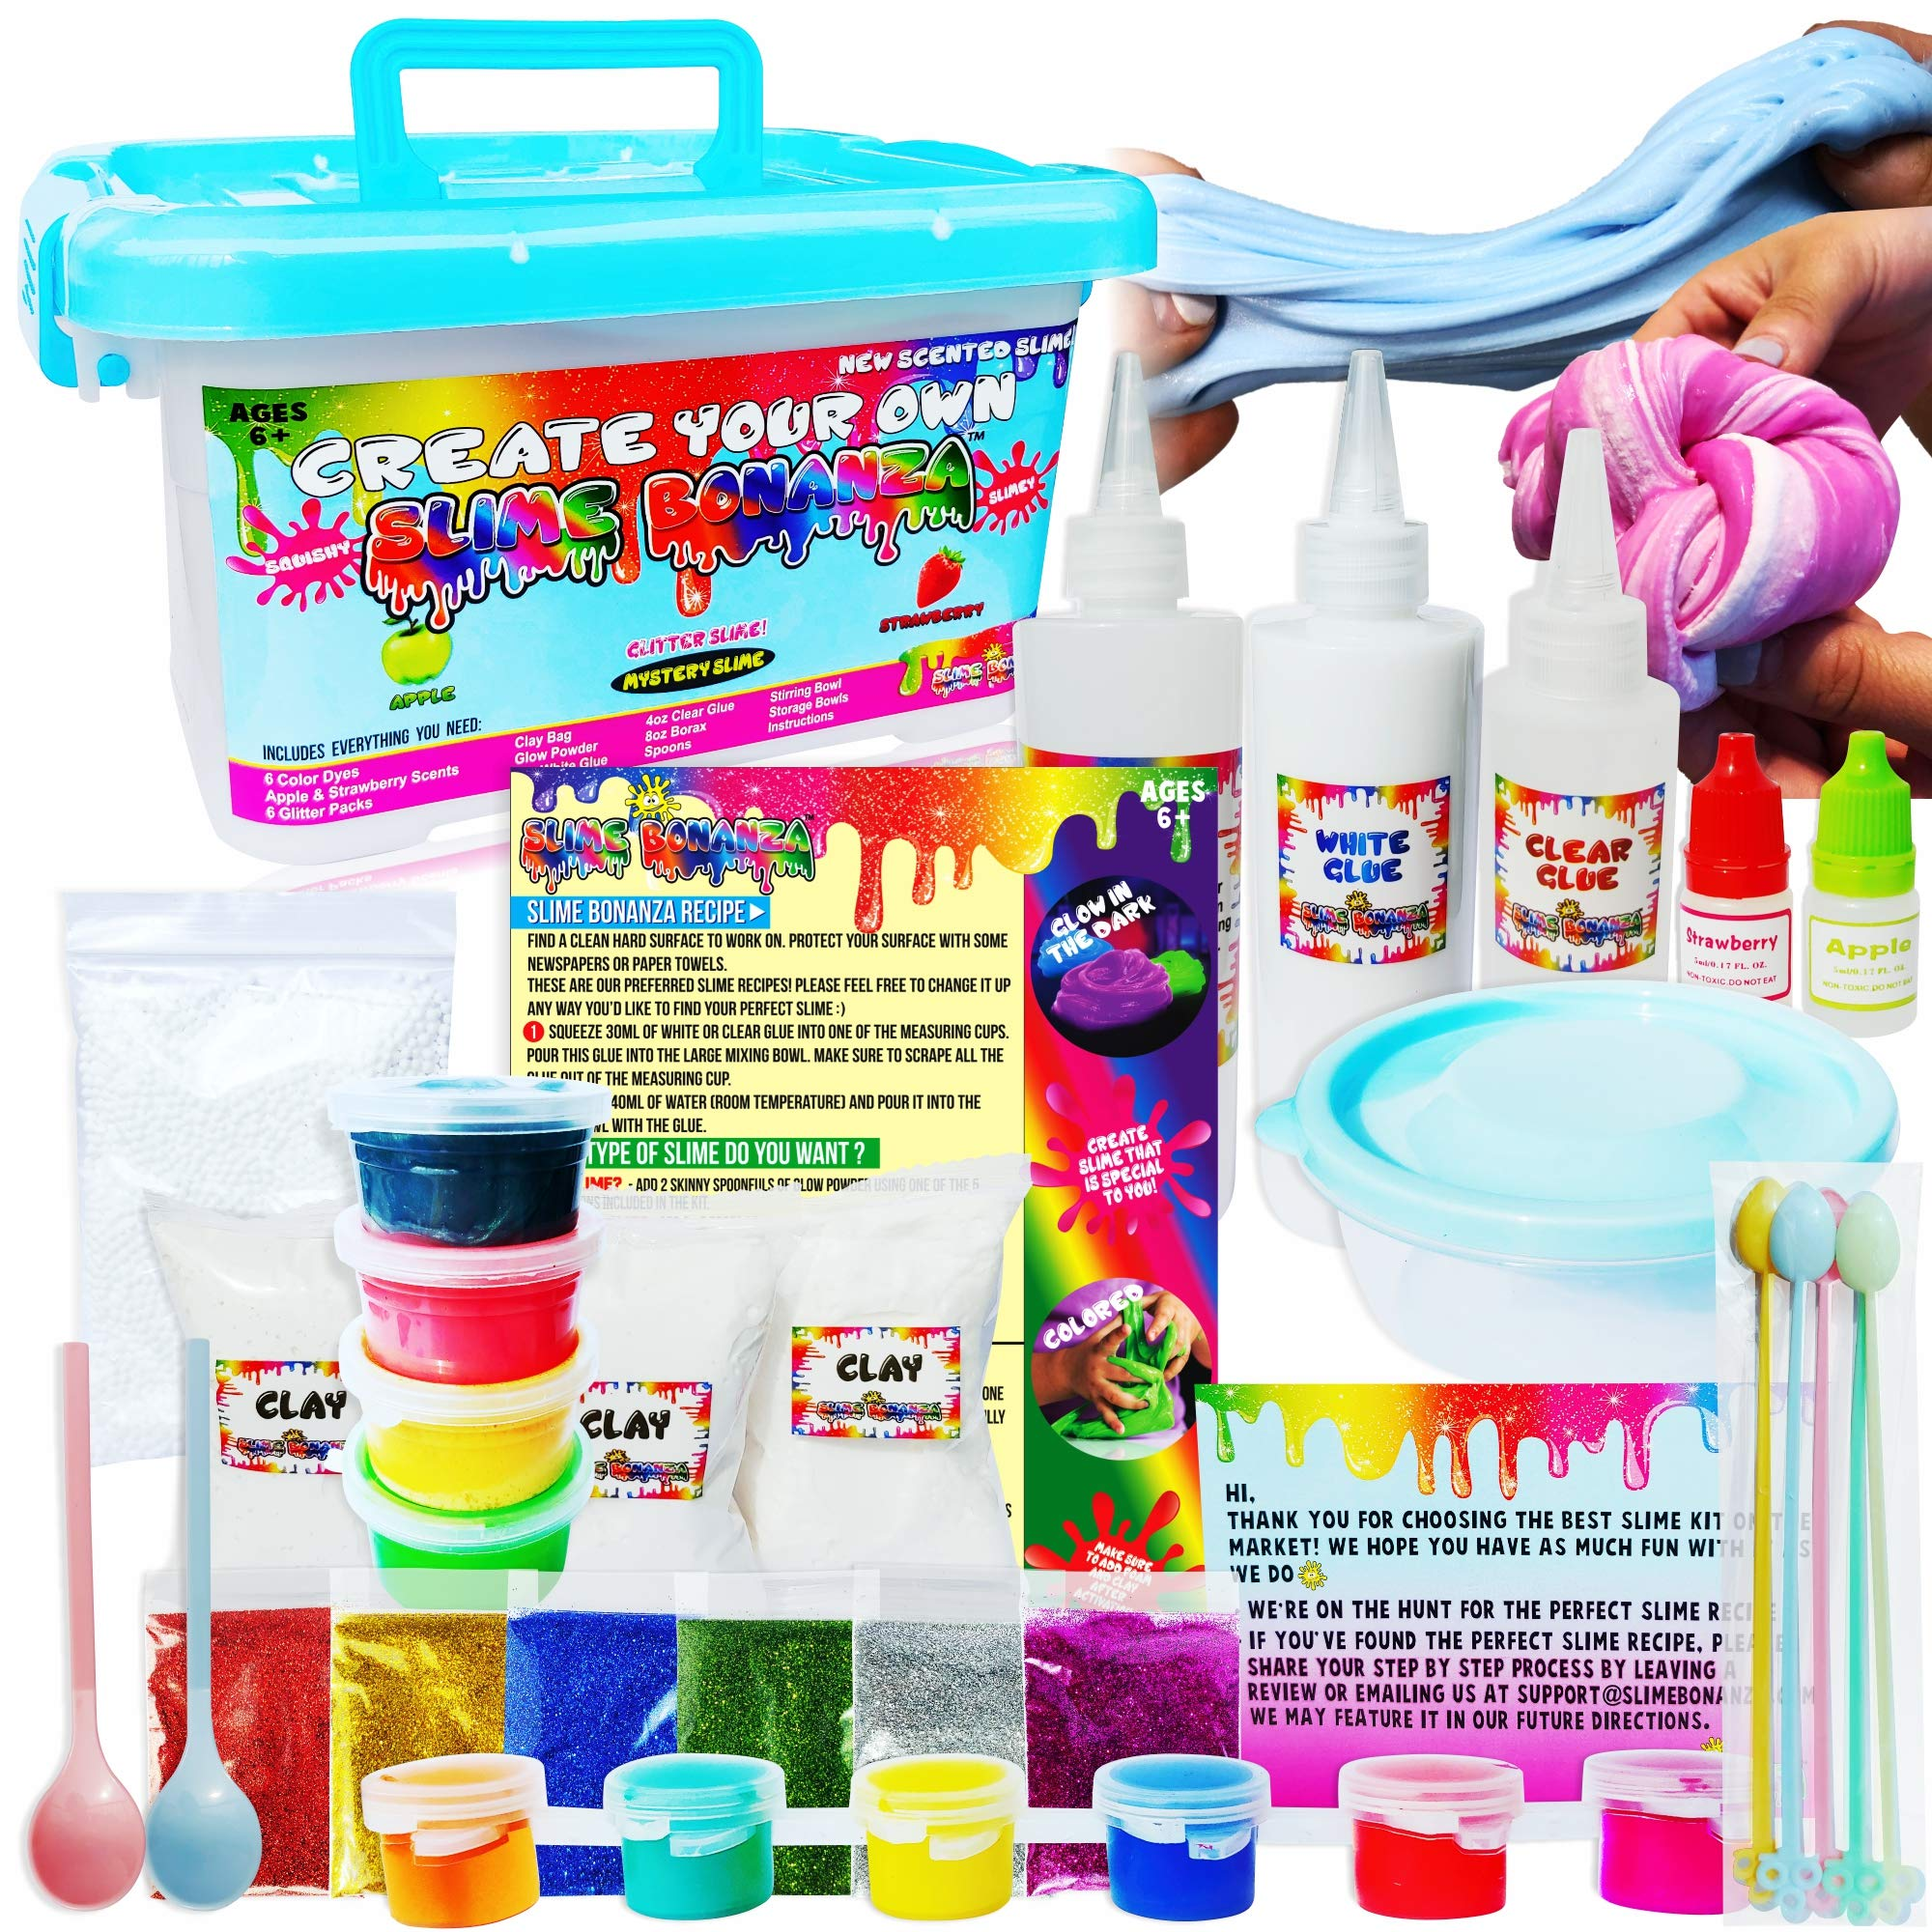 Slime Bonanza Slime kit for Girls and Boys 36pcs DIY Slime Making kit, just add Water! by Slime Bonanza